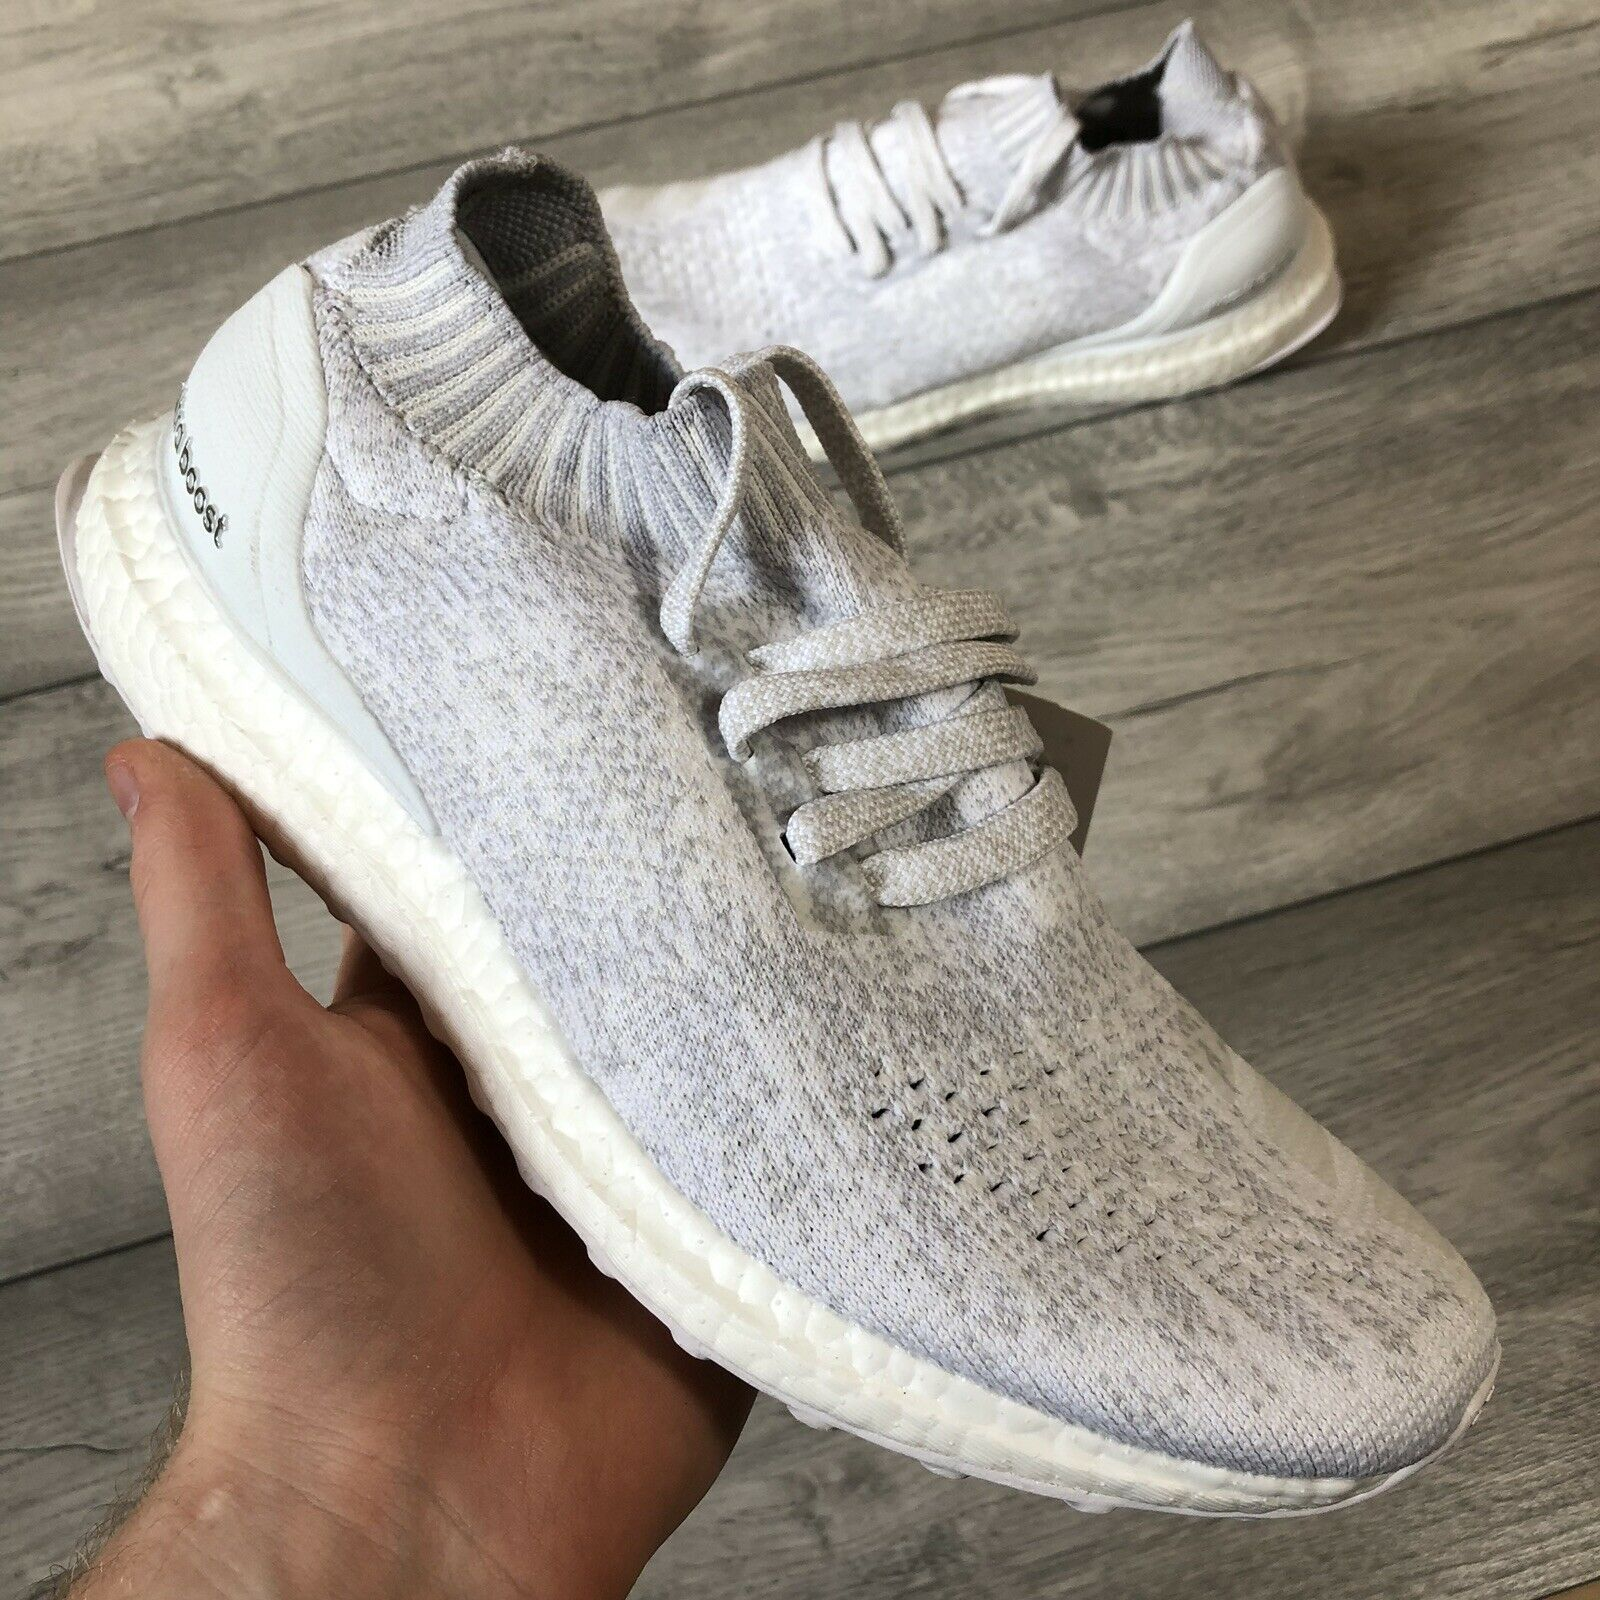 ADIDAS ULTRA BOOST UNCAGED TRIPLE WHITE SIZE UK6.5 US7 BY2549